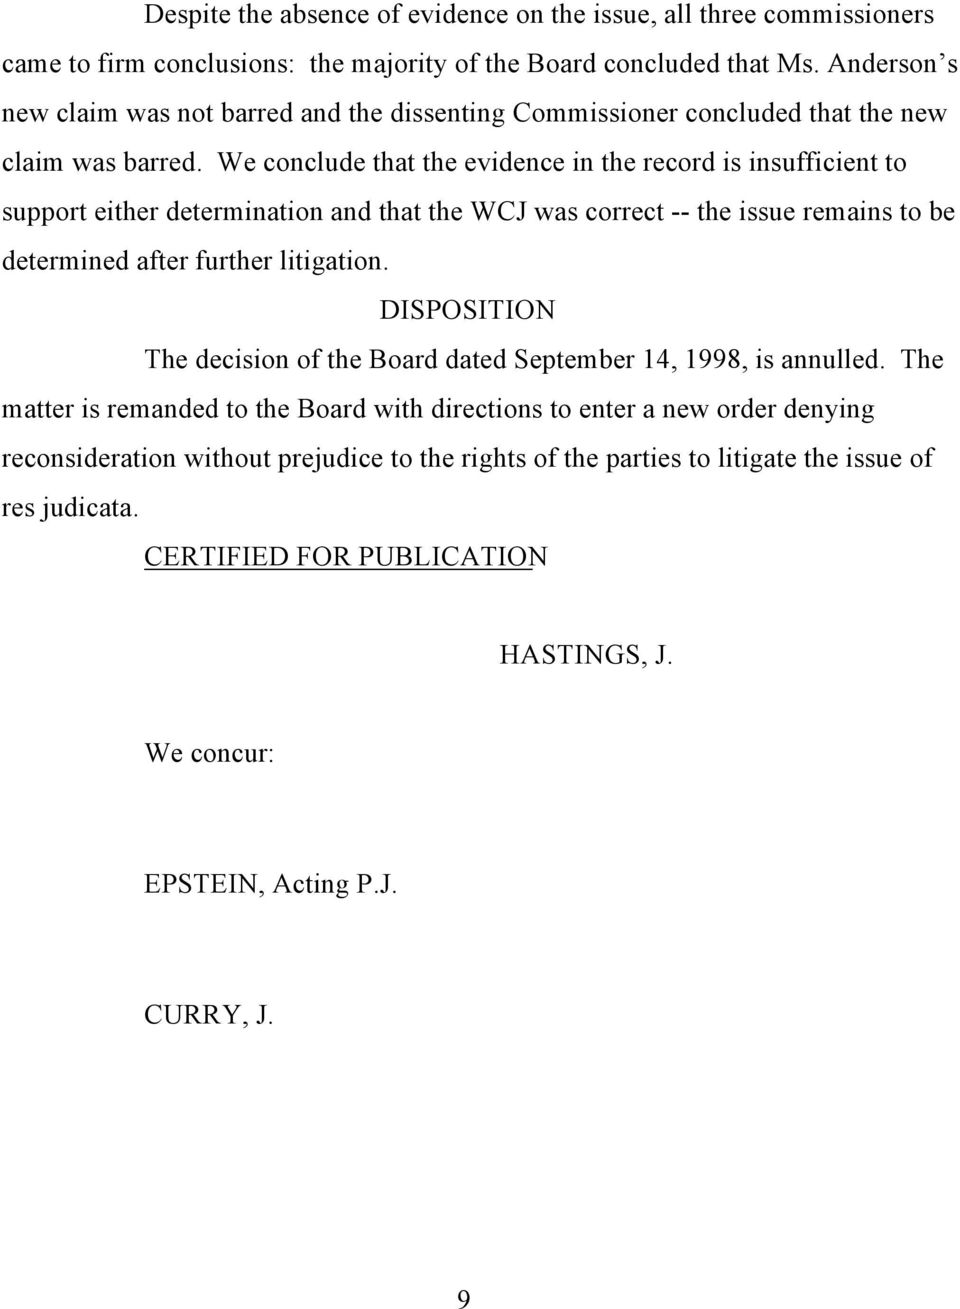 We conclude that the evidence in the record is insufficient to support either determination and that the WCJ was correct -- the issue remains to be determined after further litigation.